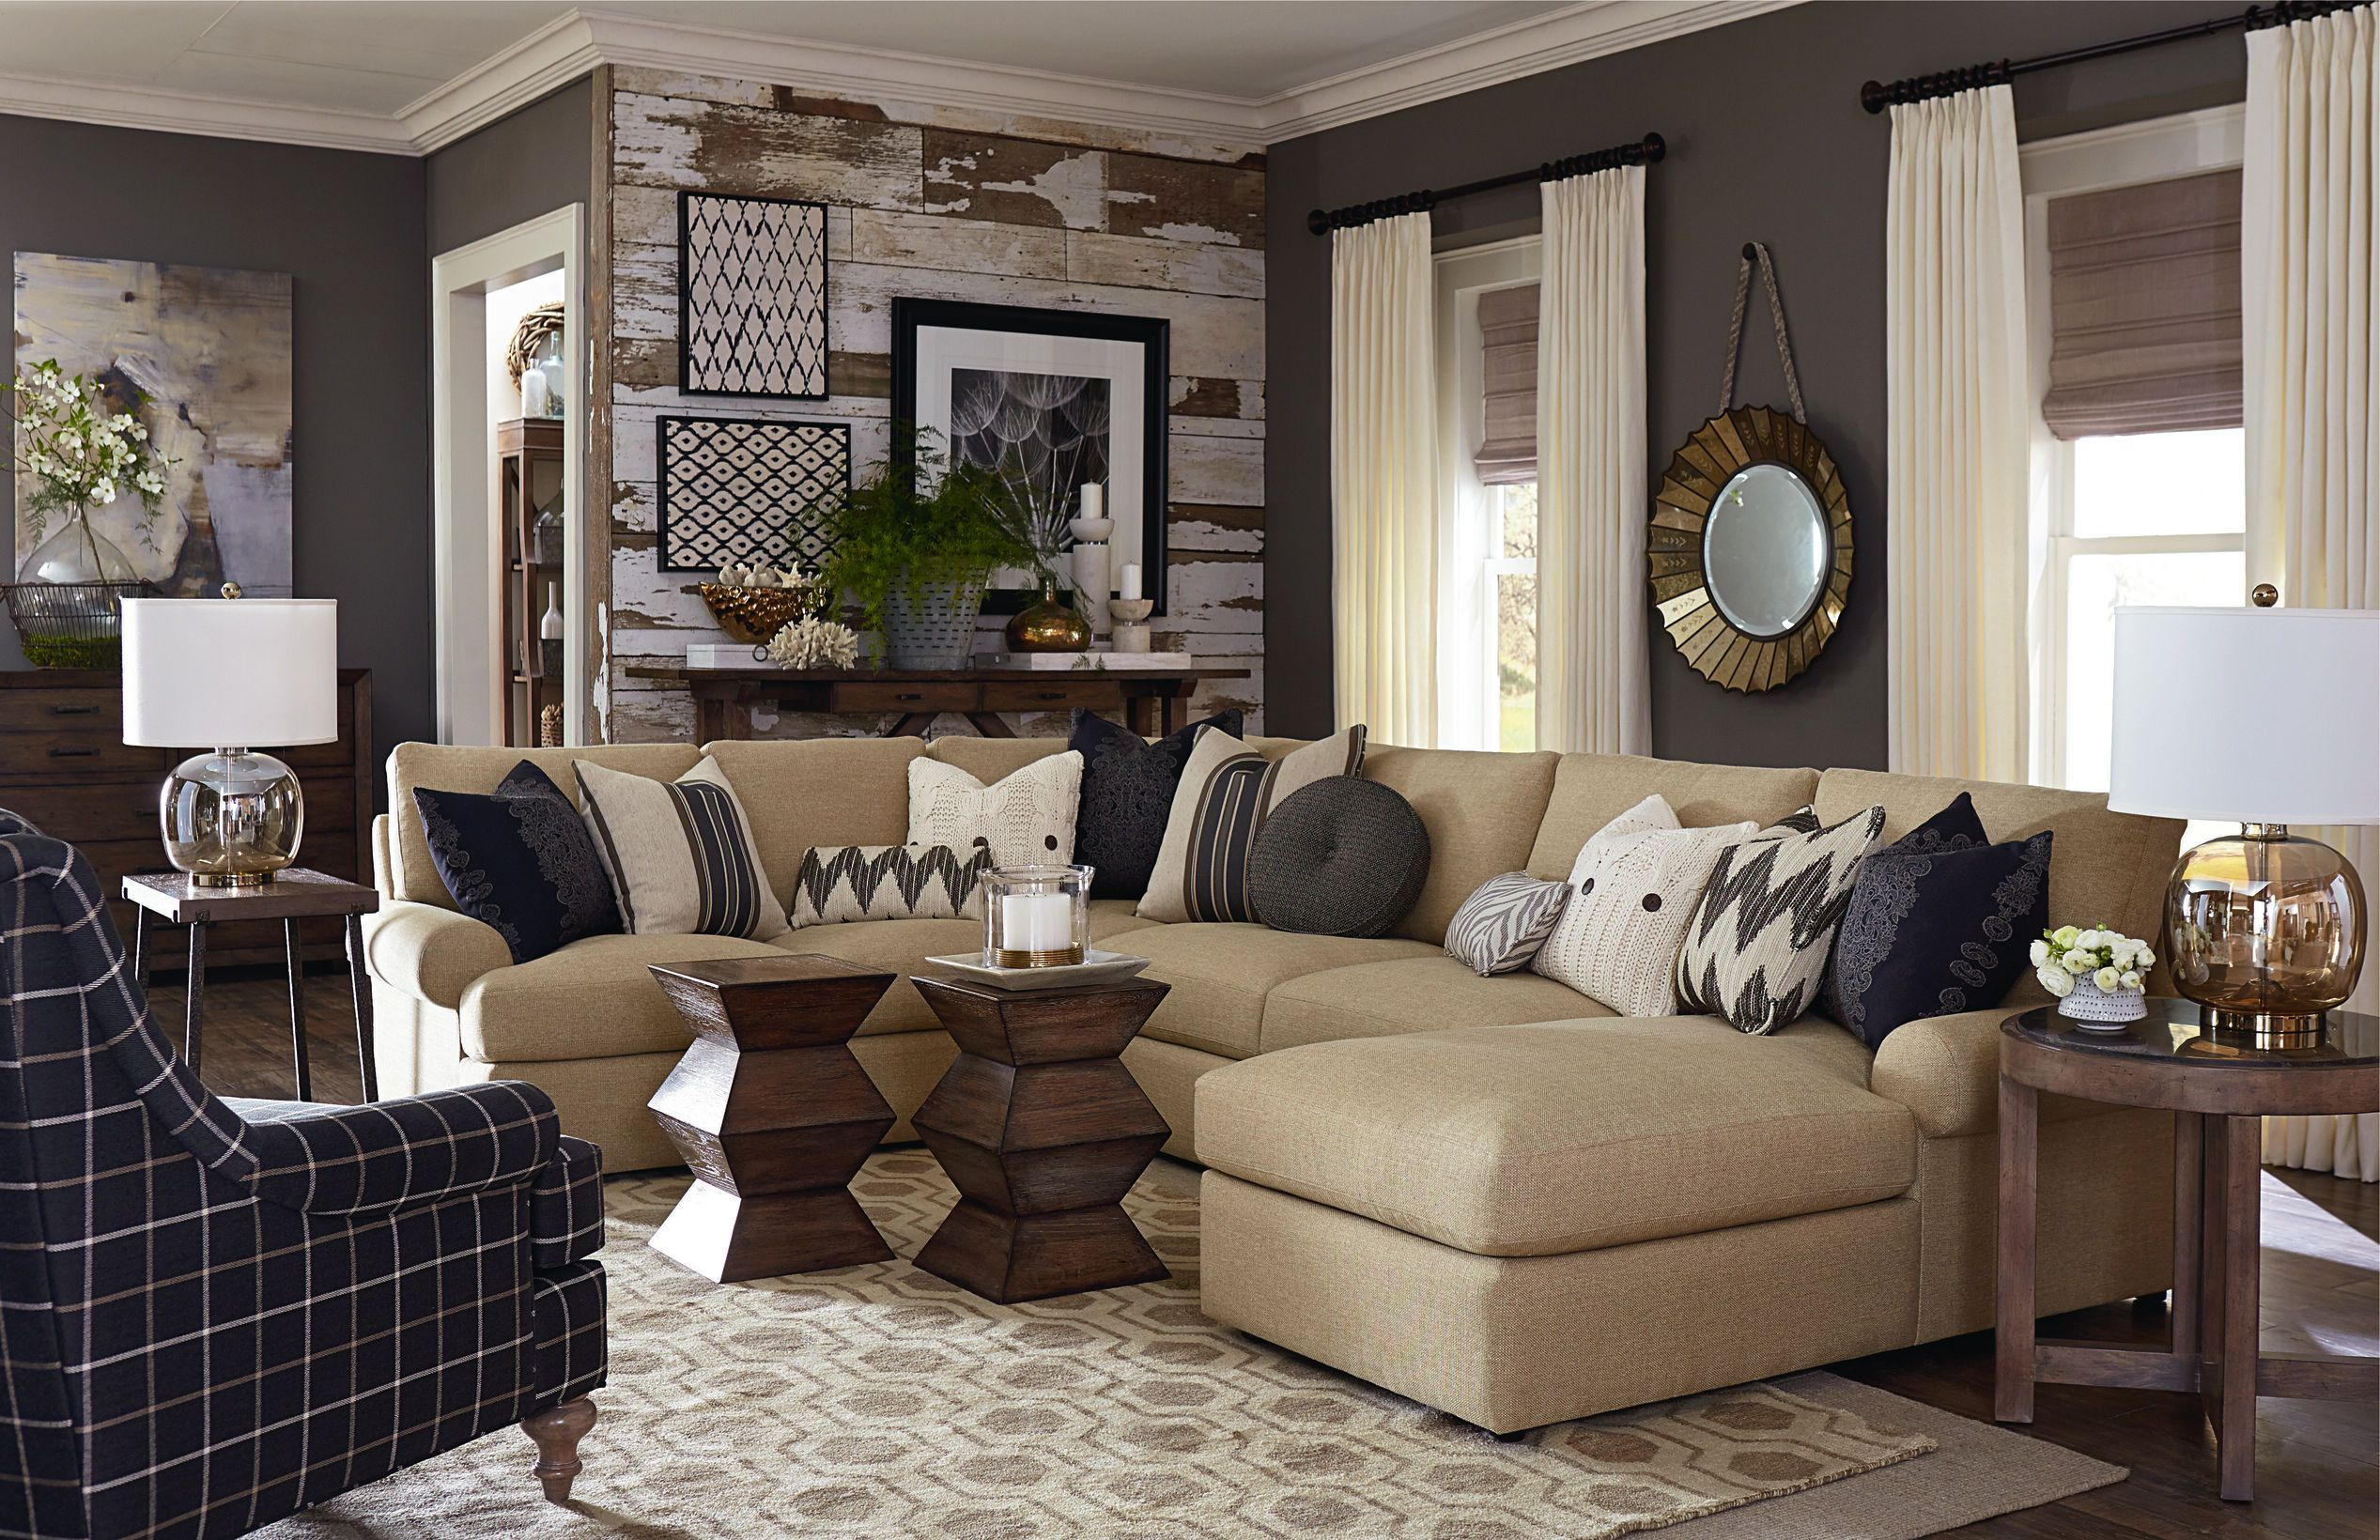 Plaid Woonkamer What Do You Think About This Living Room From Bassett It